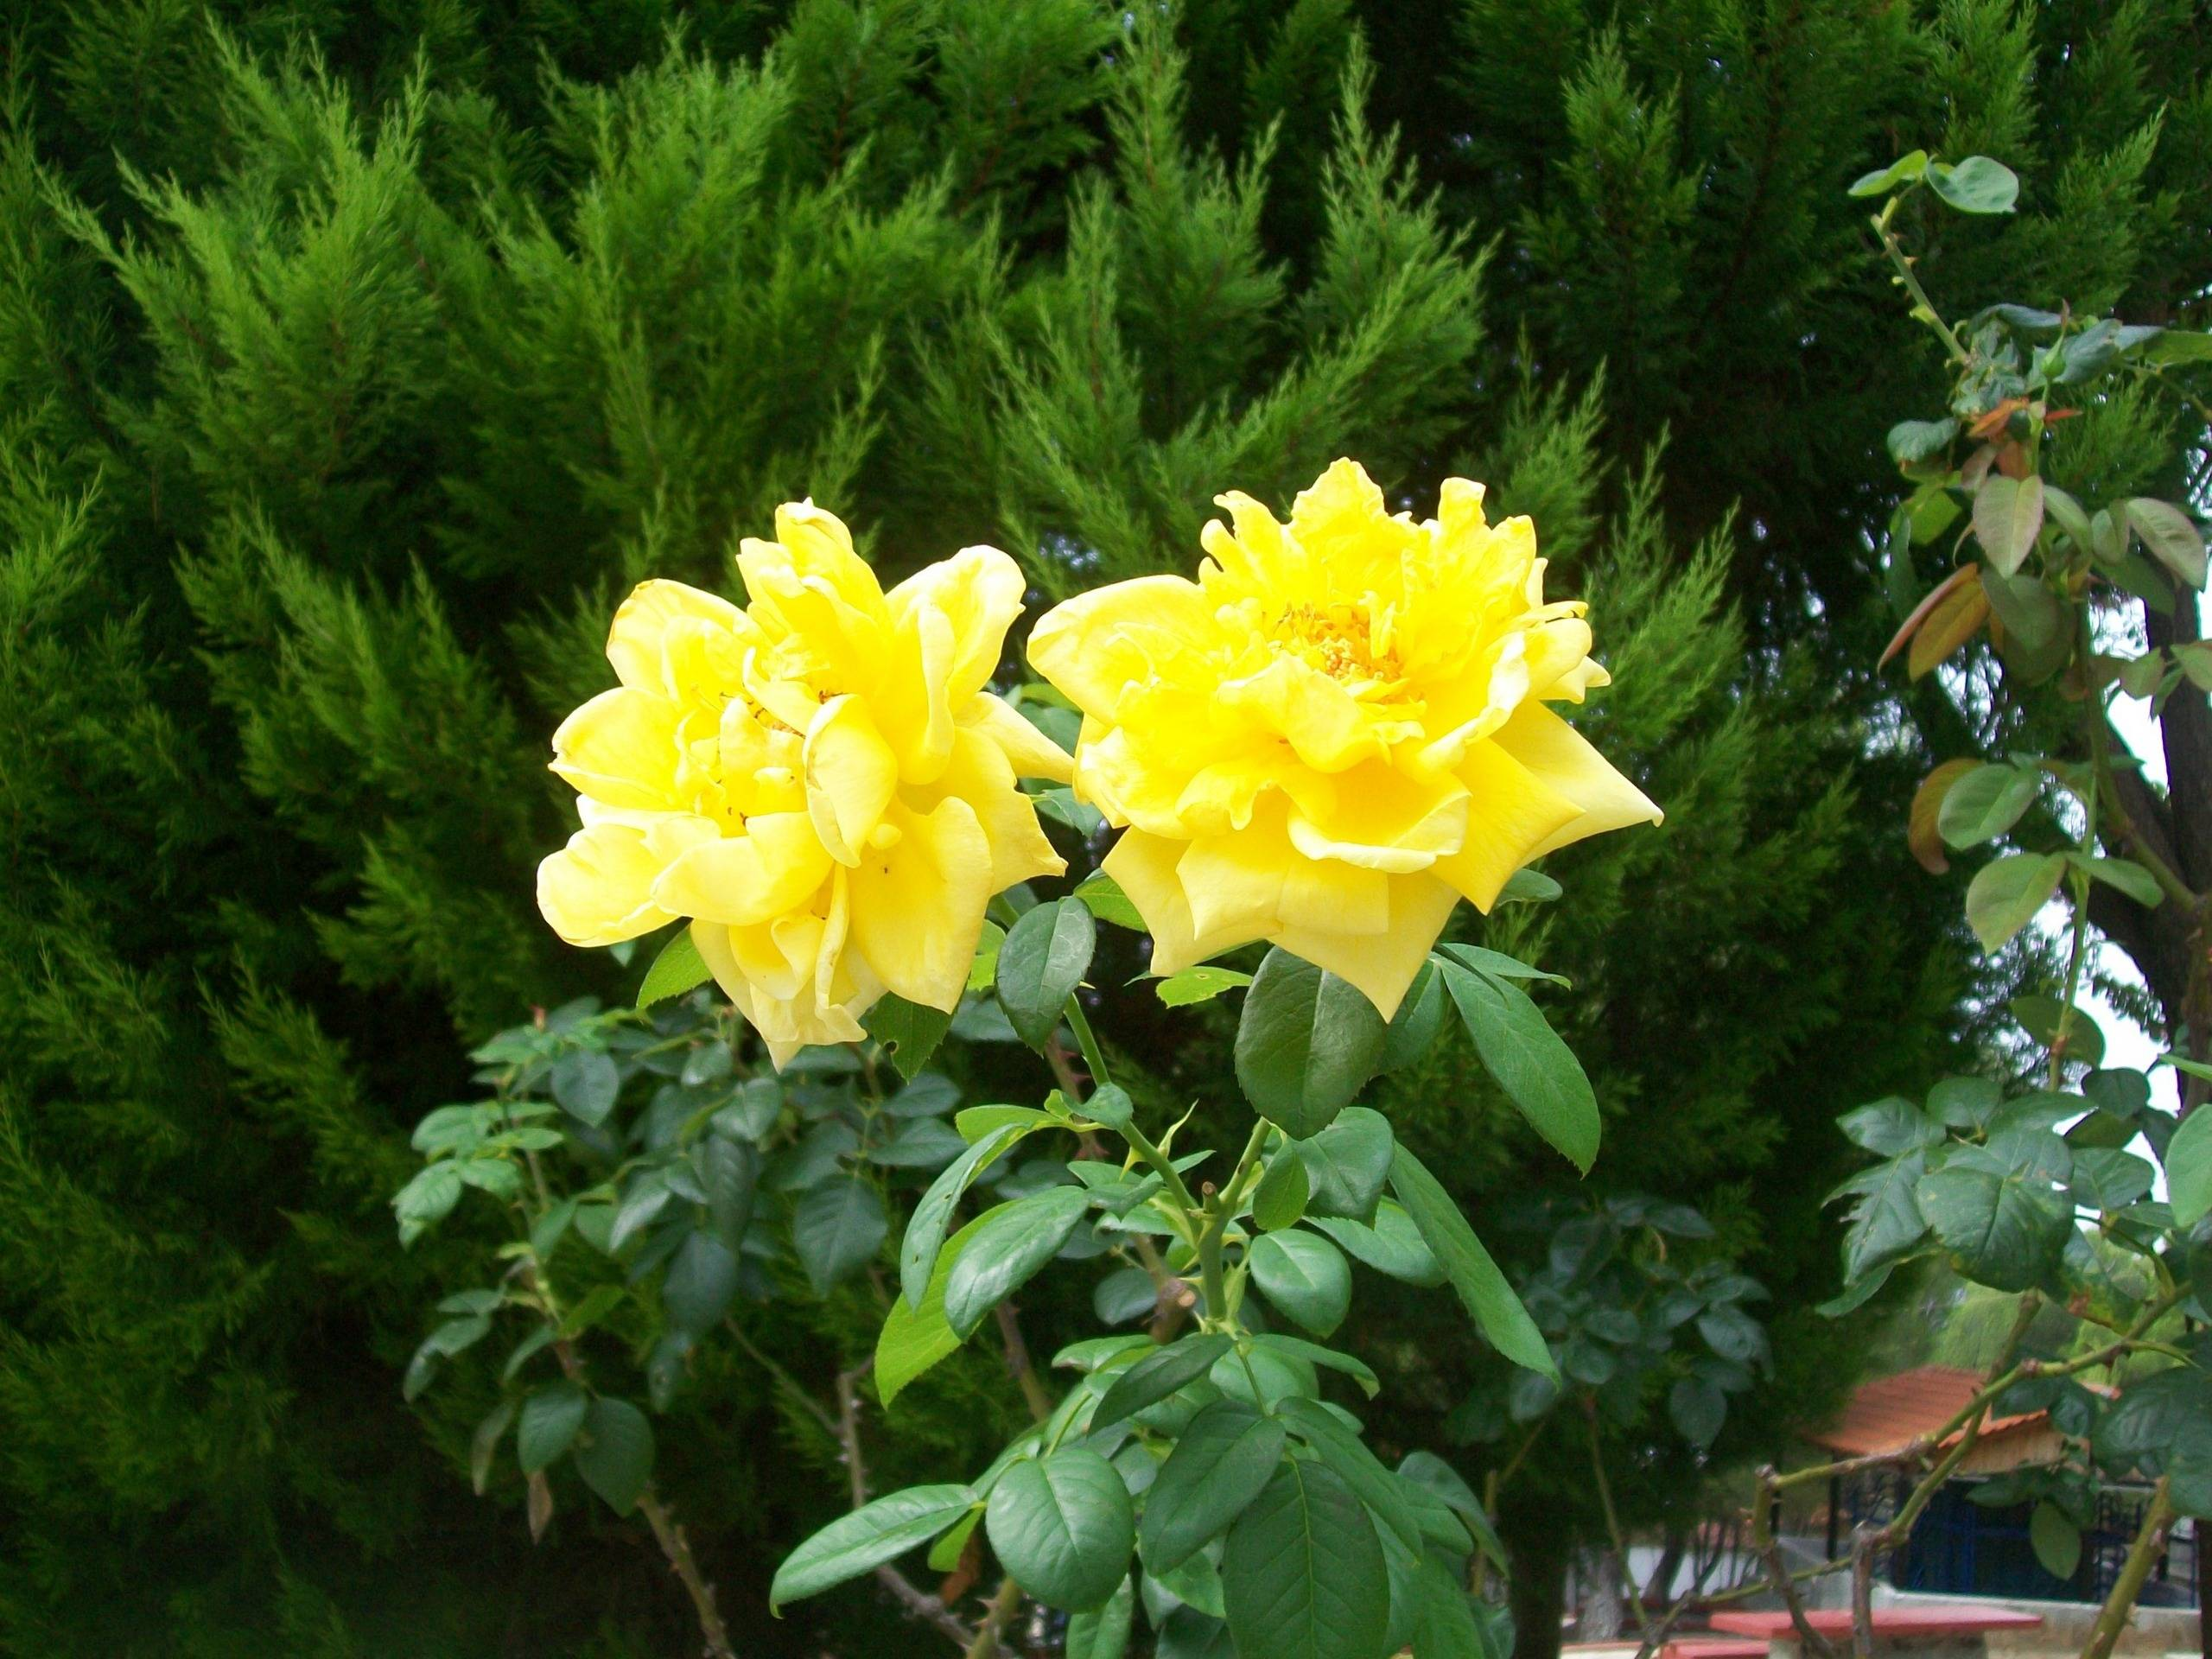 Hd wallpaper yellow rose - Yellow Rose Awesome Wallpaper Hd Wallpapers